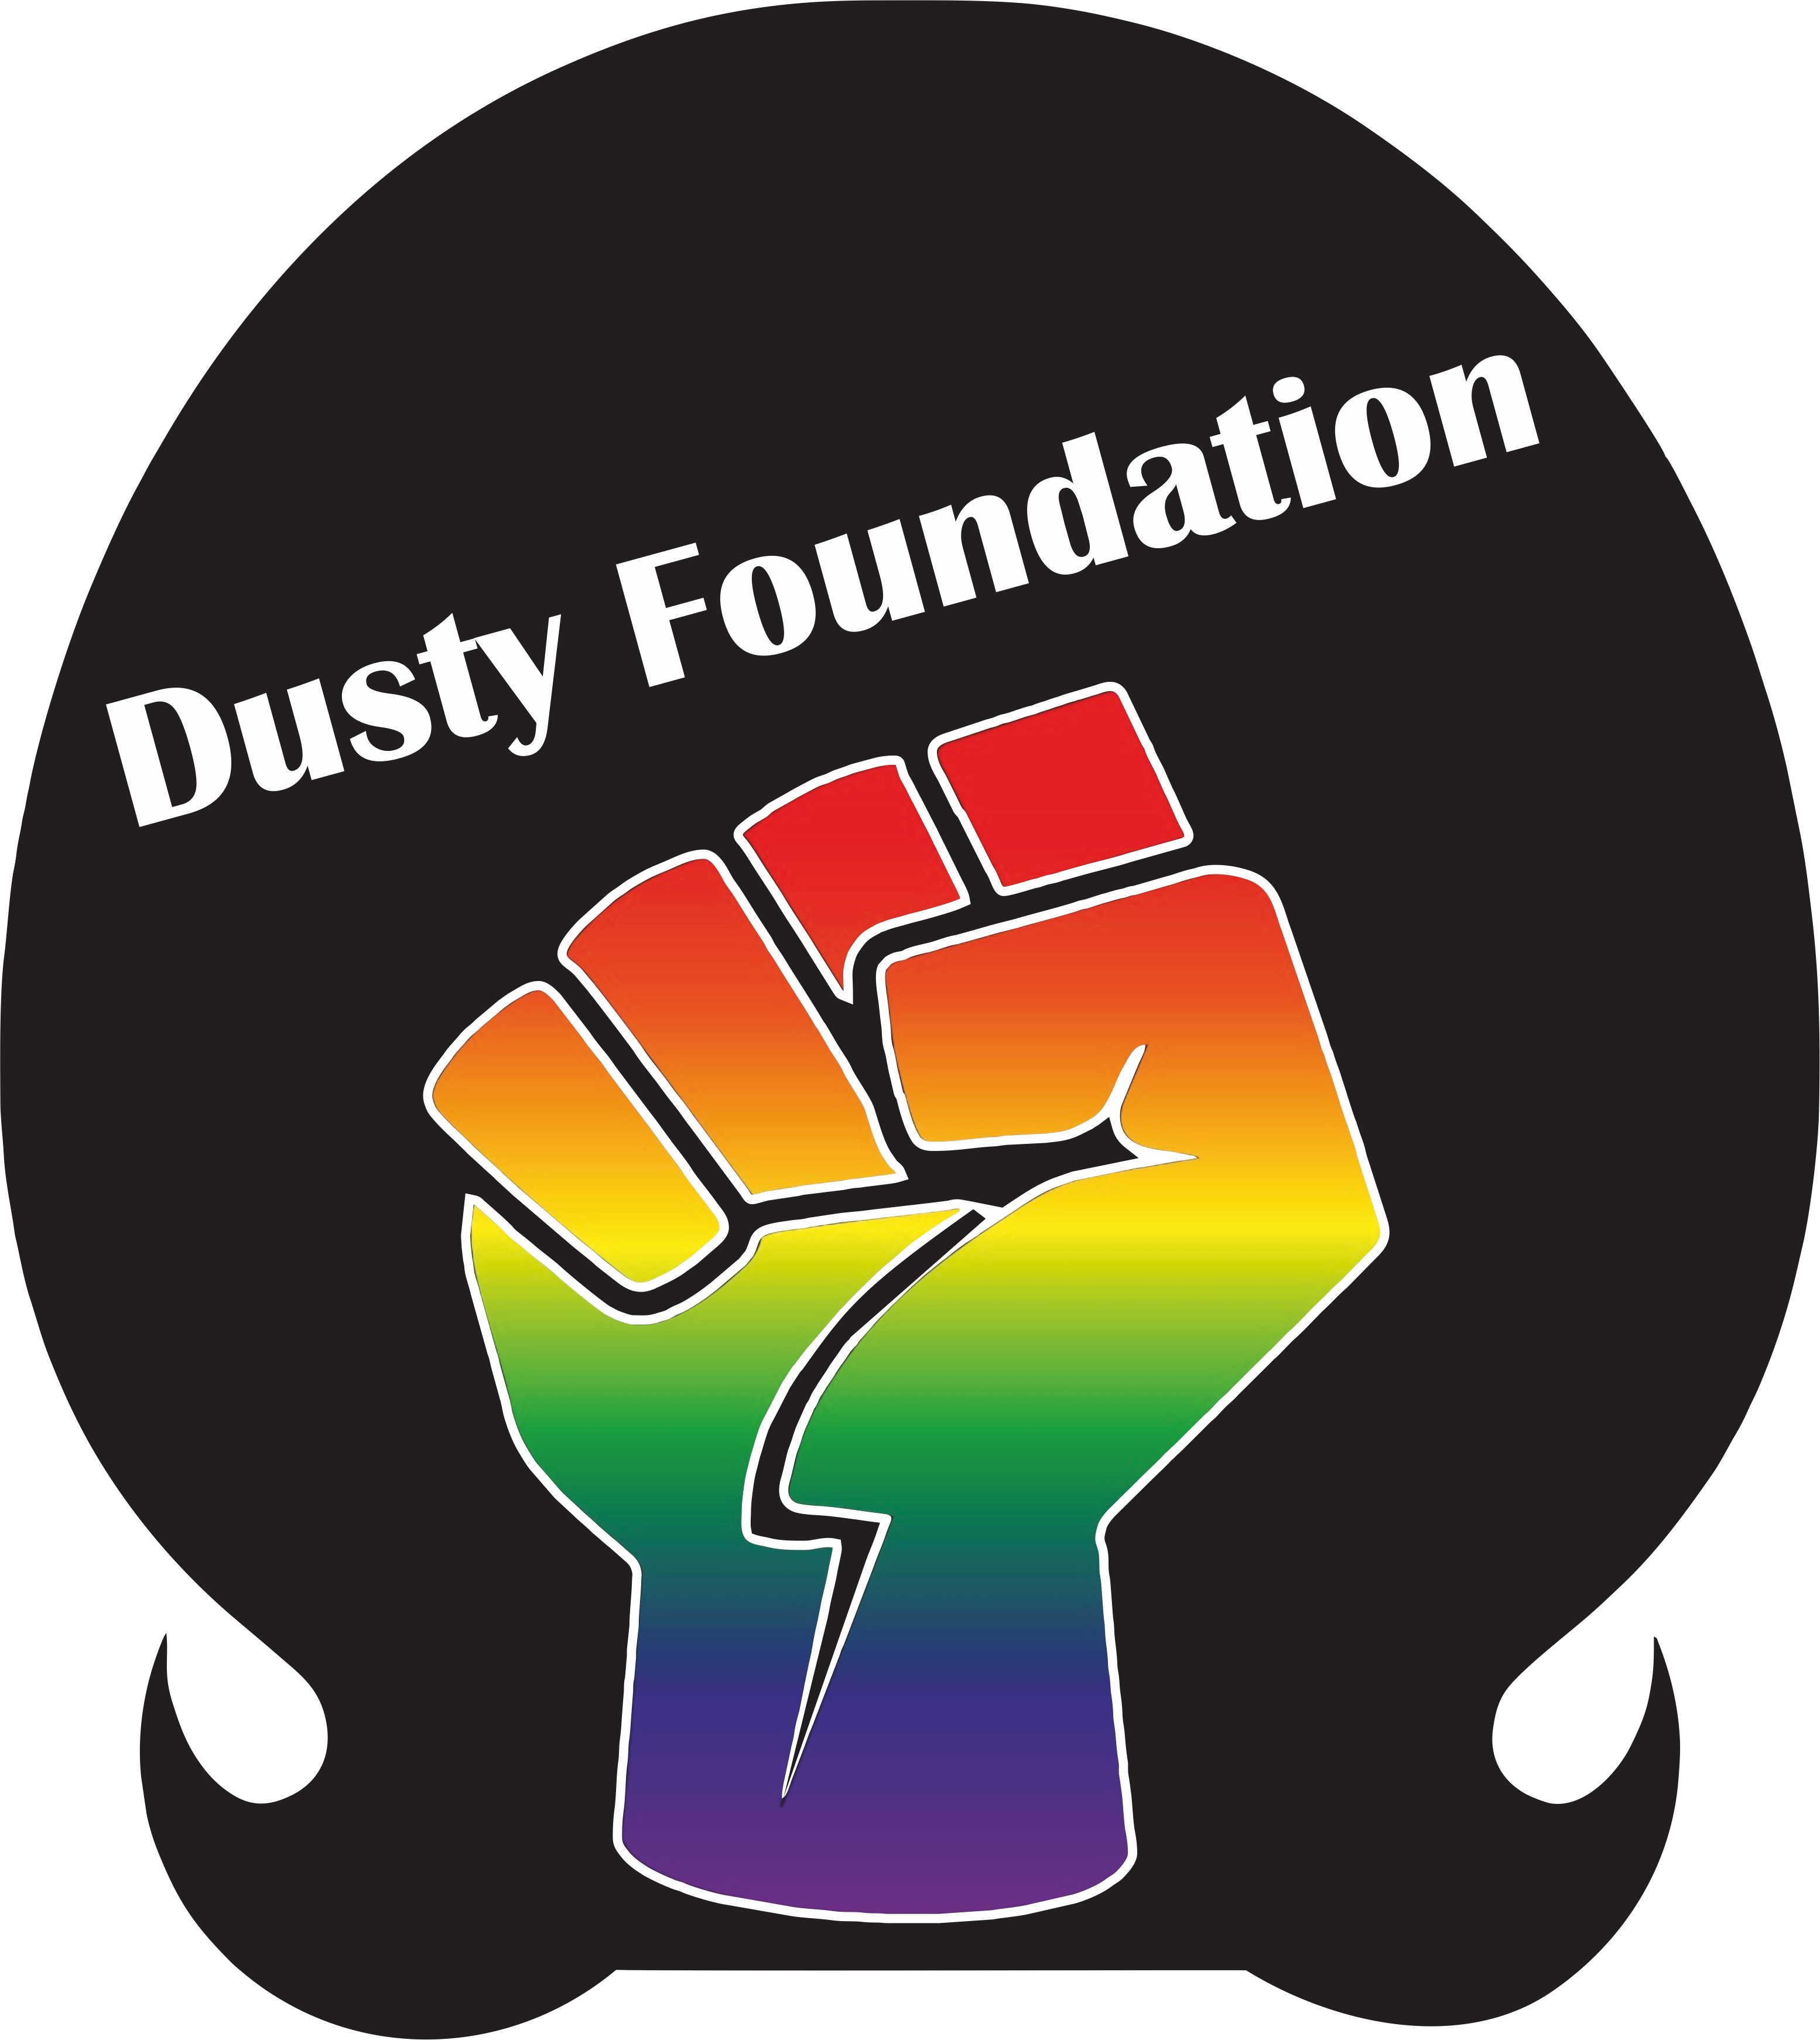 DustyFoundationLogo2.0